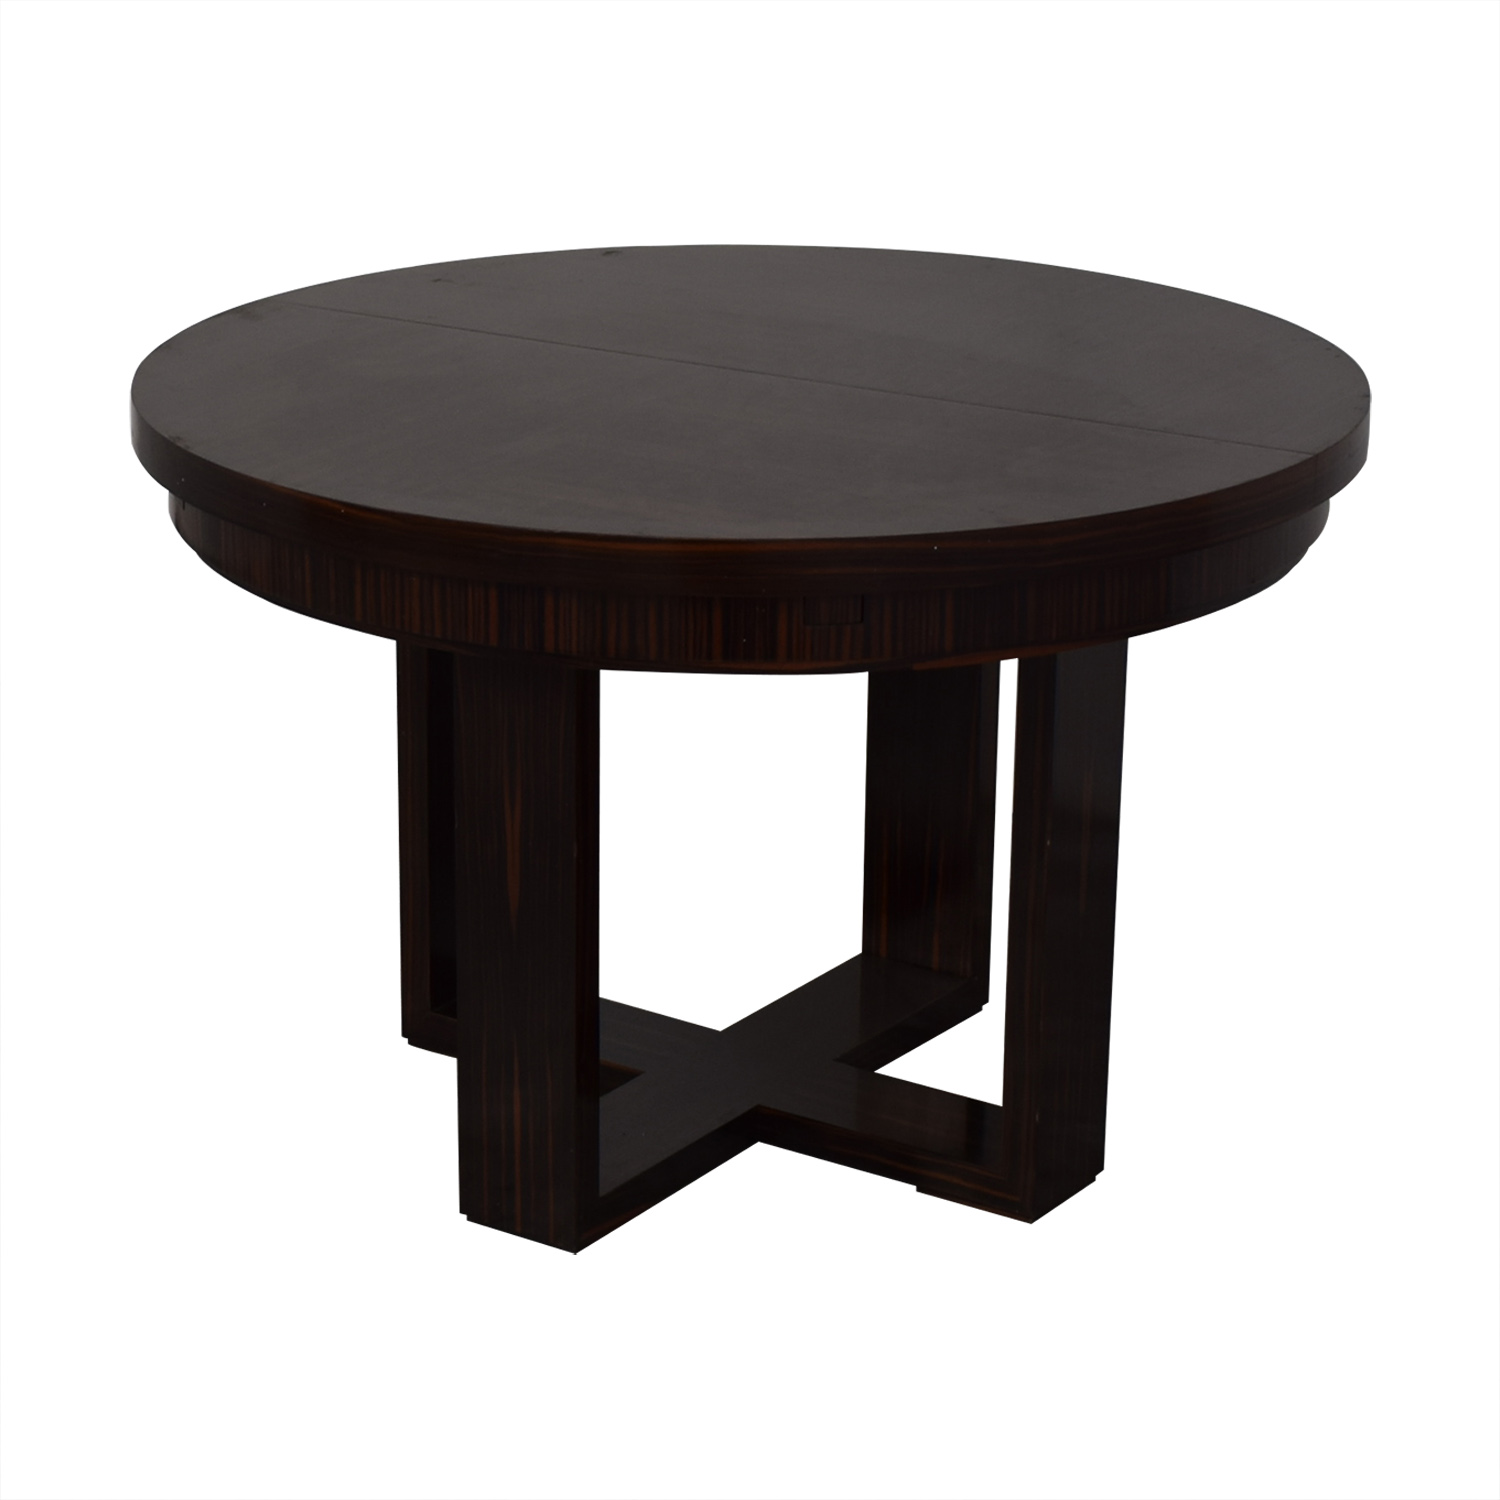 Annibale Colombo Annibale Colombo Extension Dining Table for sale